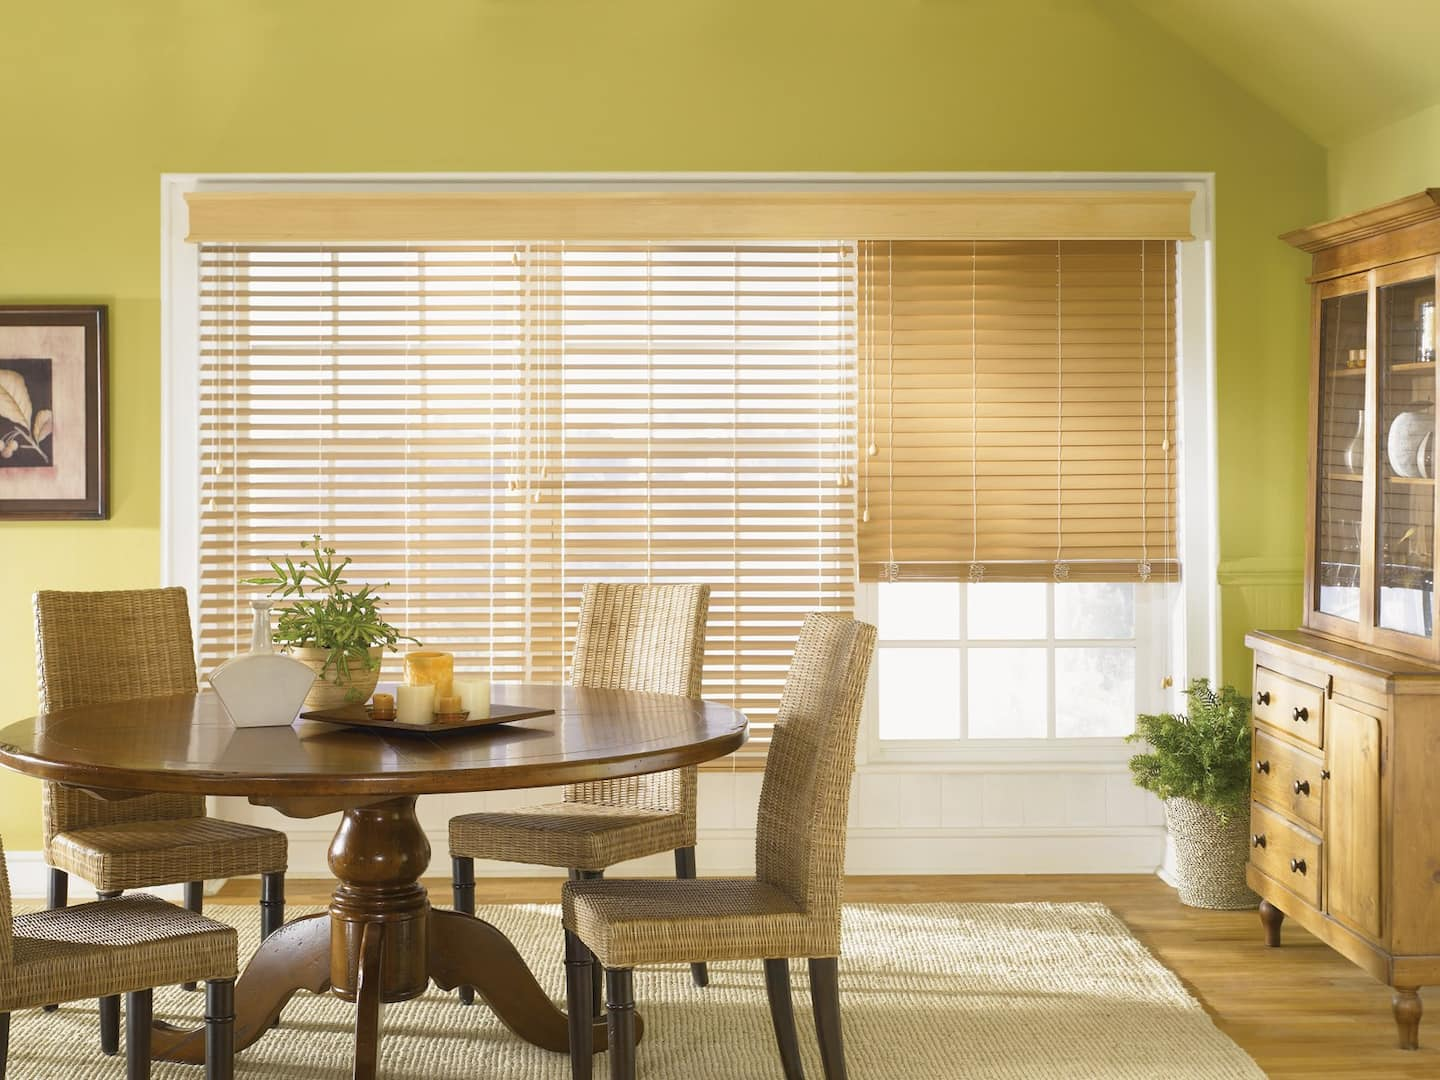 Contemporary Dining Room With Wicker Chairs, Country Style Hutch And  Composite Wood Blinds With